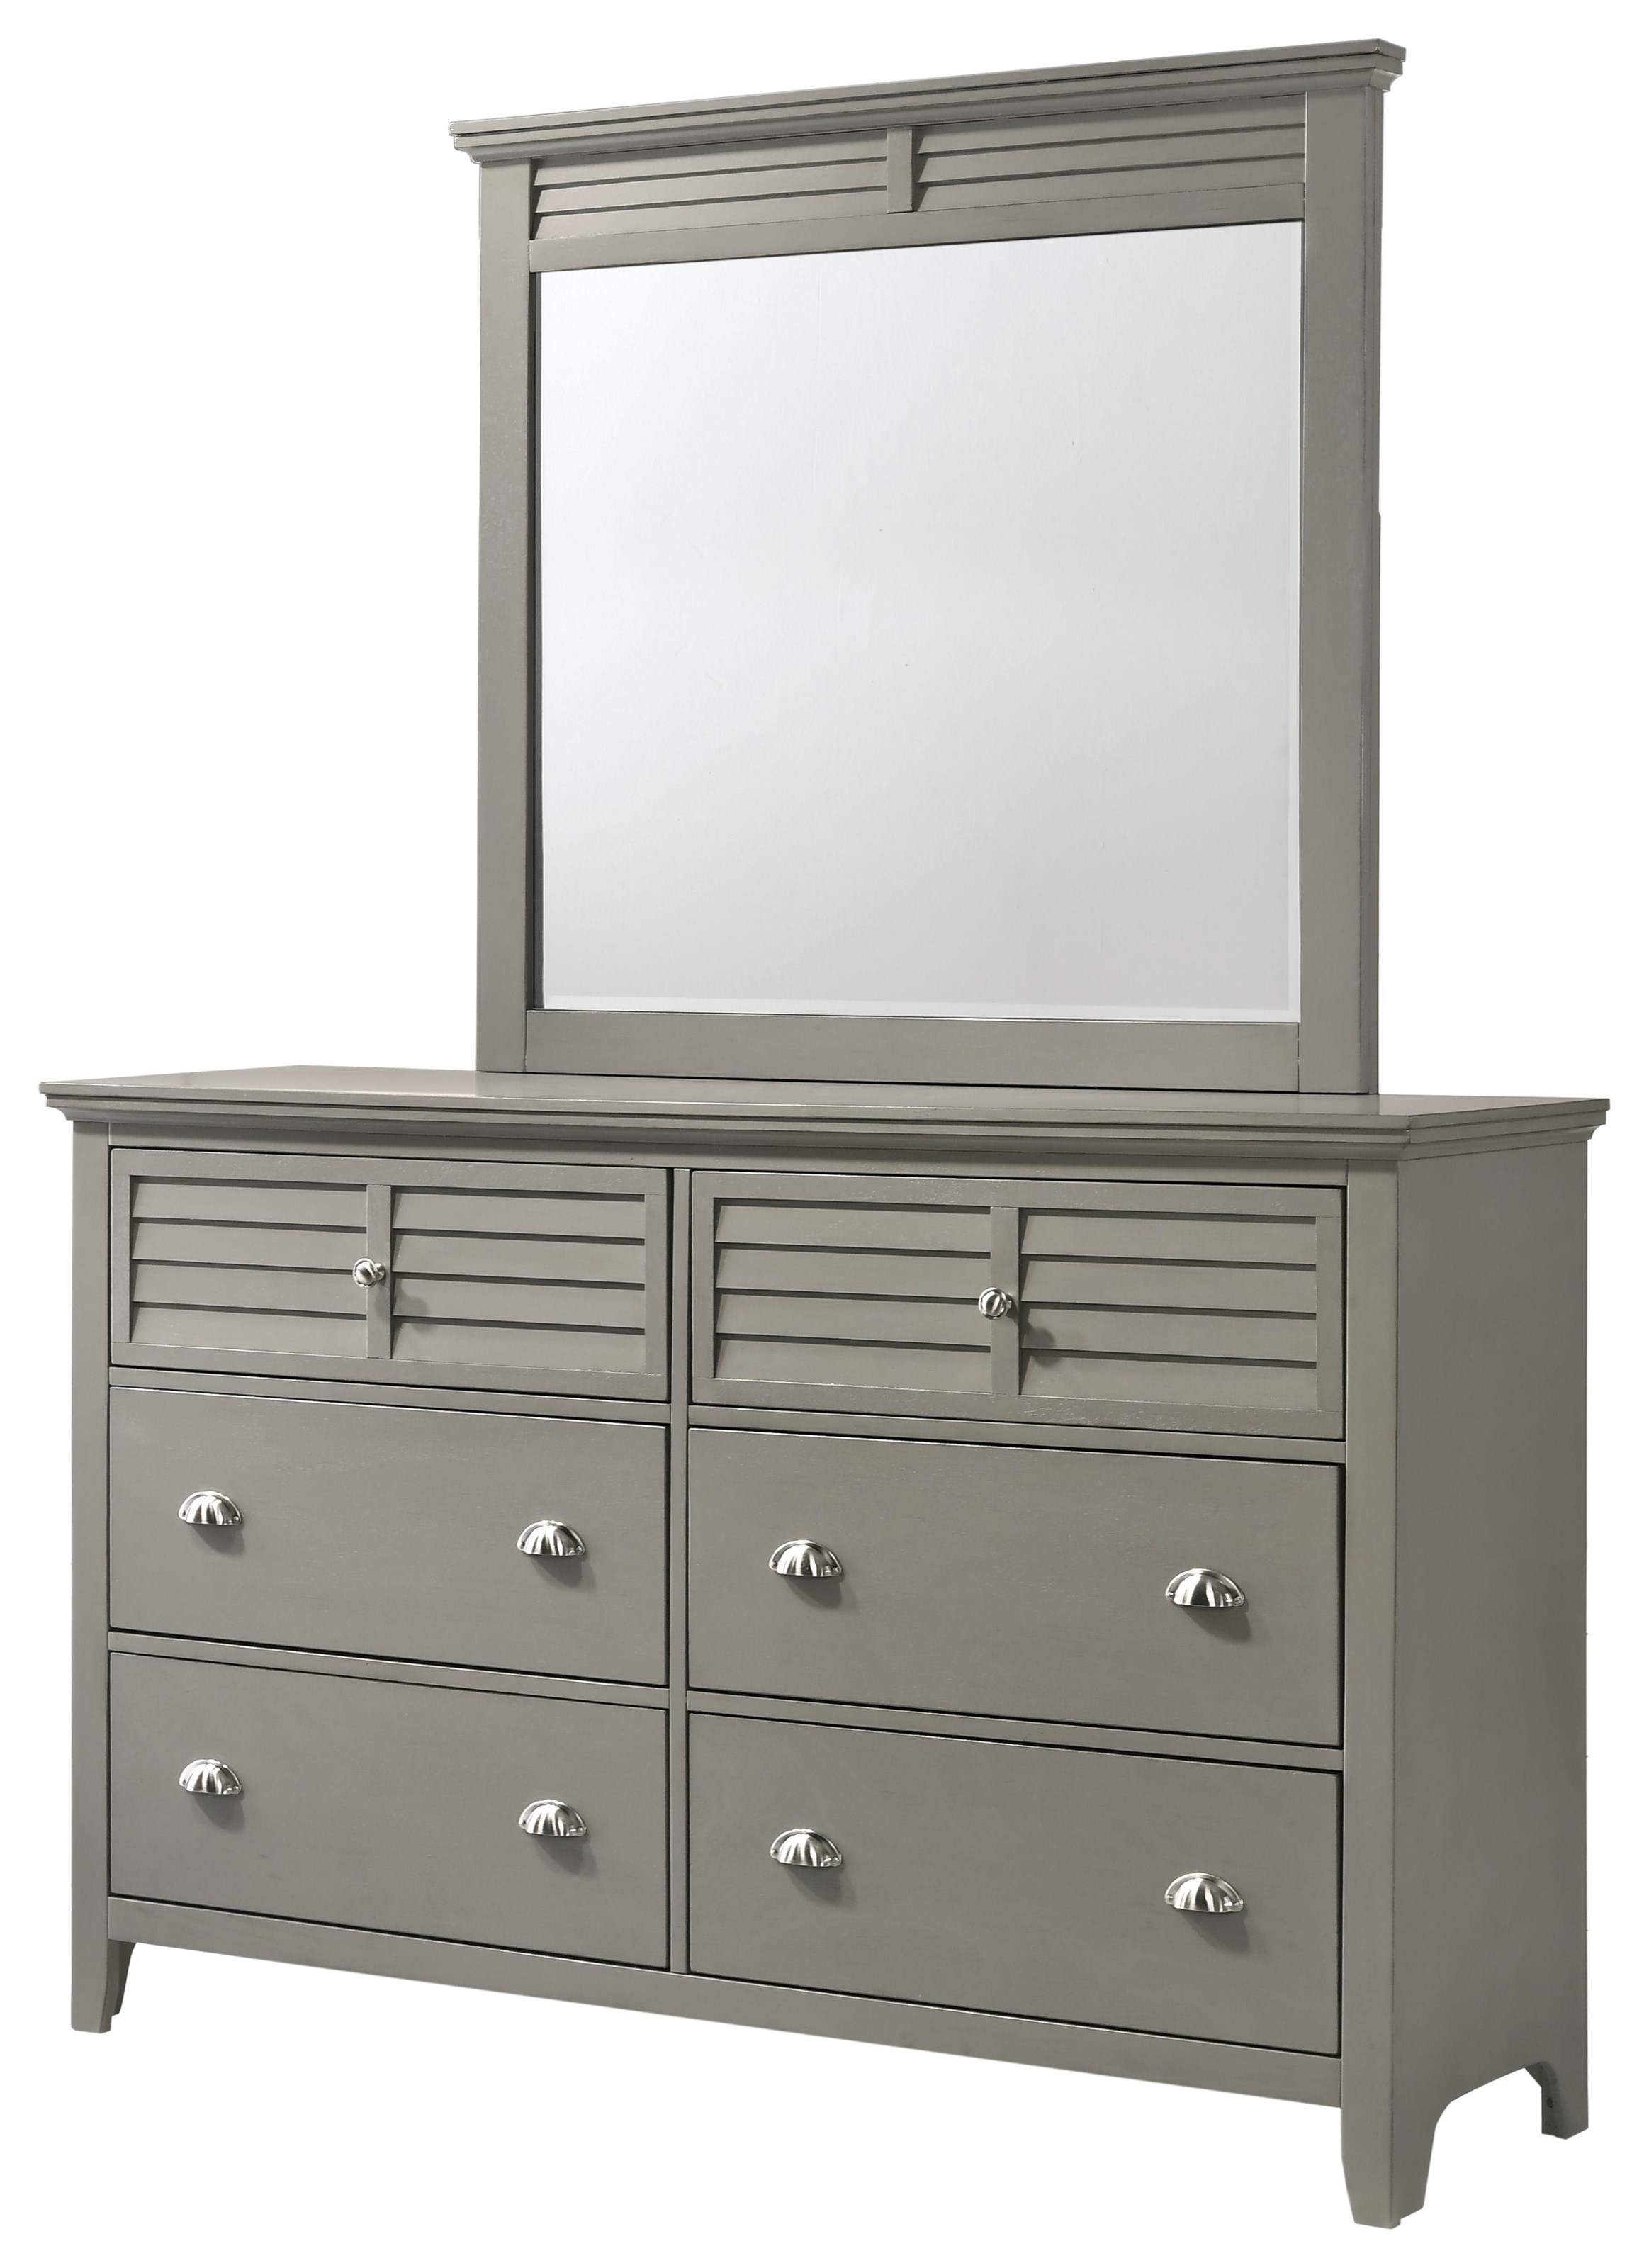 C7313GREY Double Dresser by Lifestyle at Furniture Fair - North Carolina